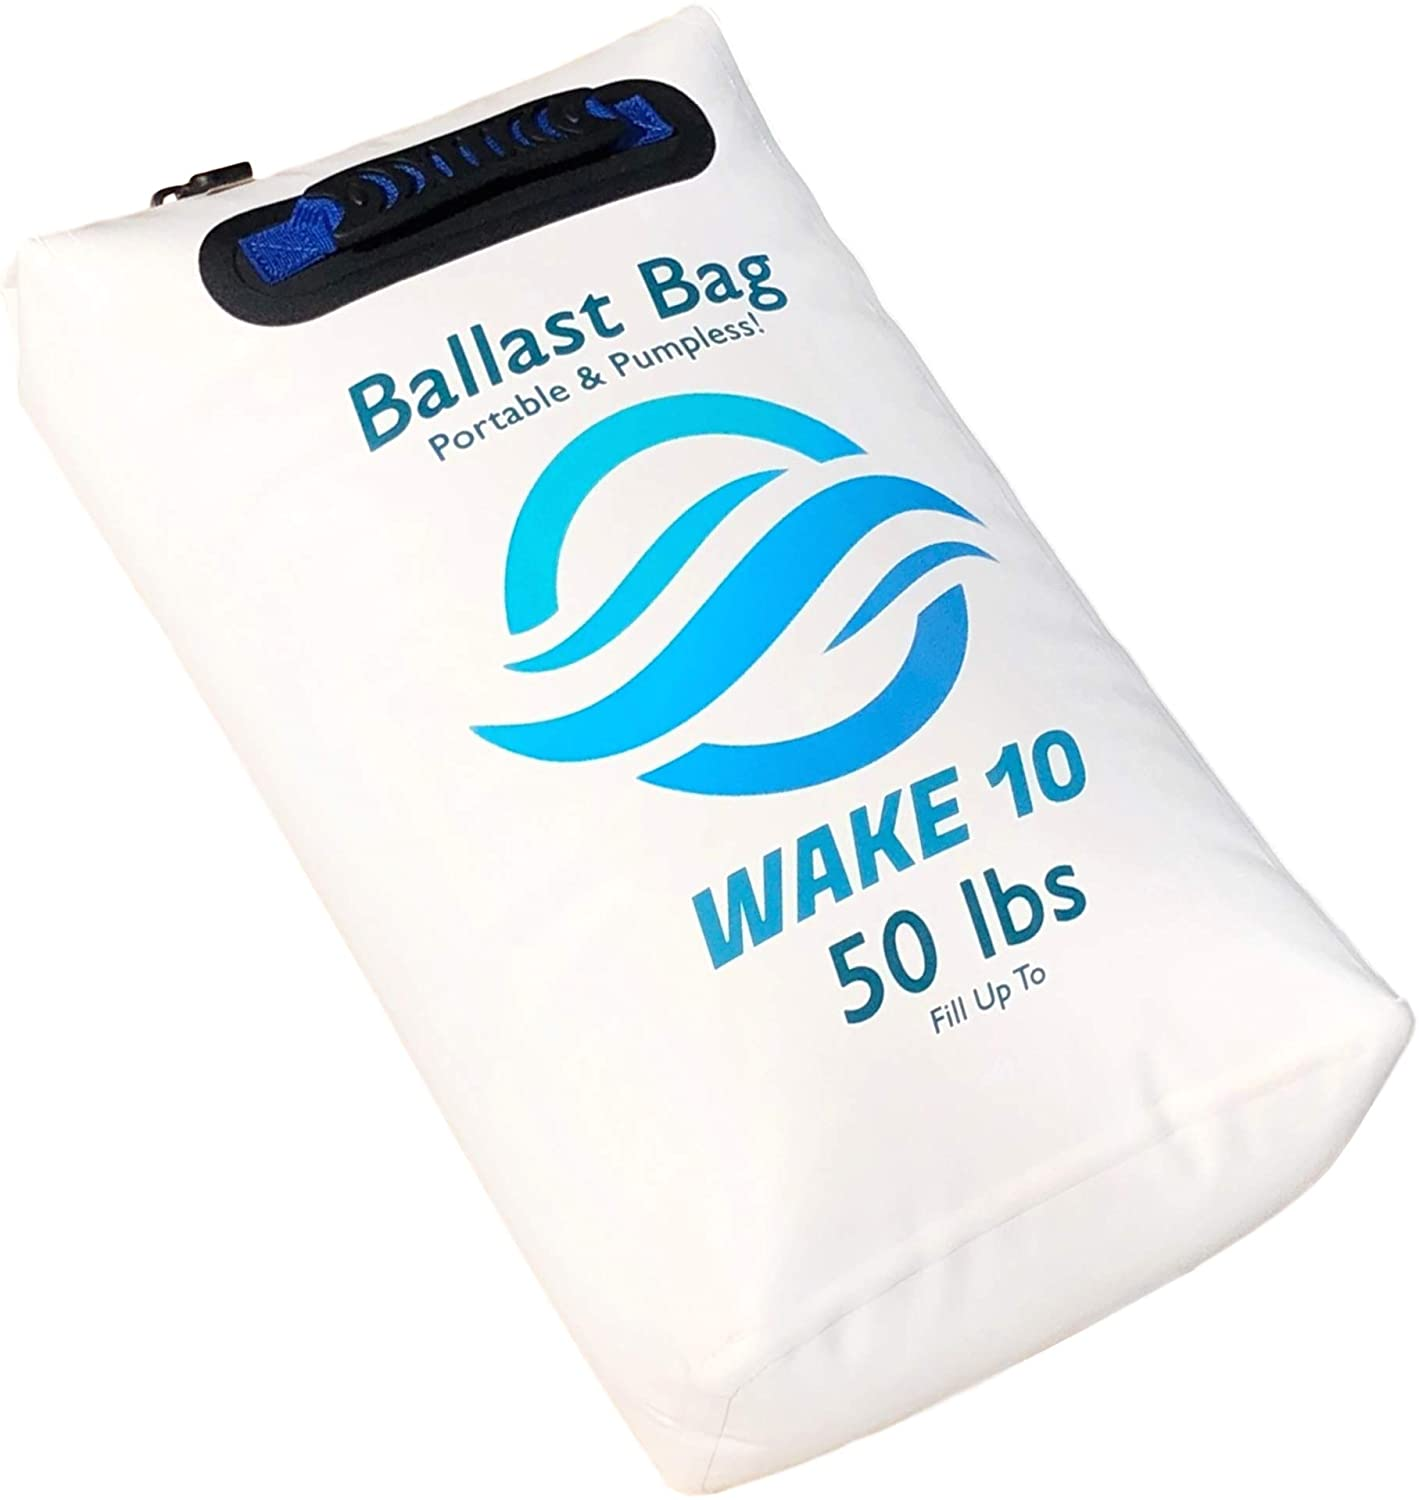 WAKE Al sold out. 10 Boat Ballast Bag - 50 All items free shipping Wake Pumpless and lb. Portable